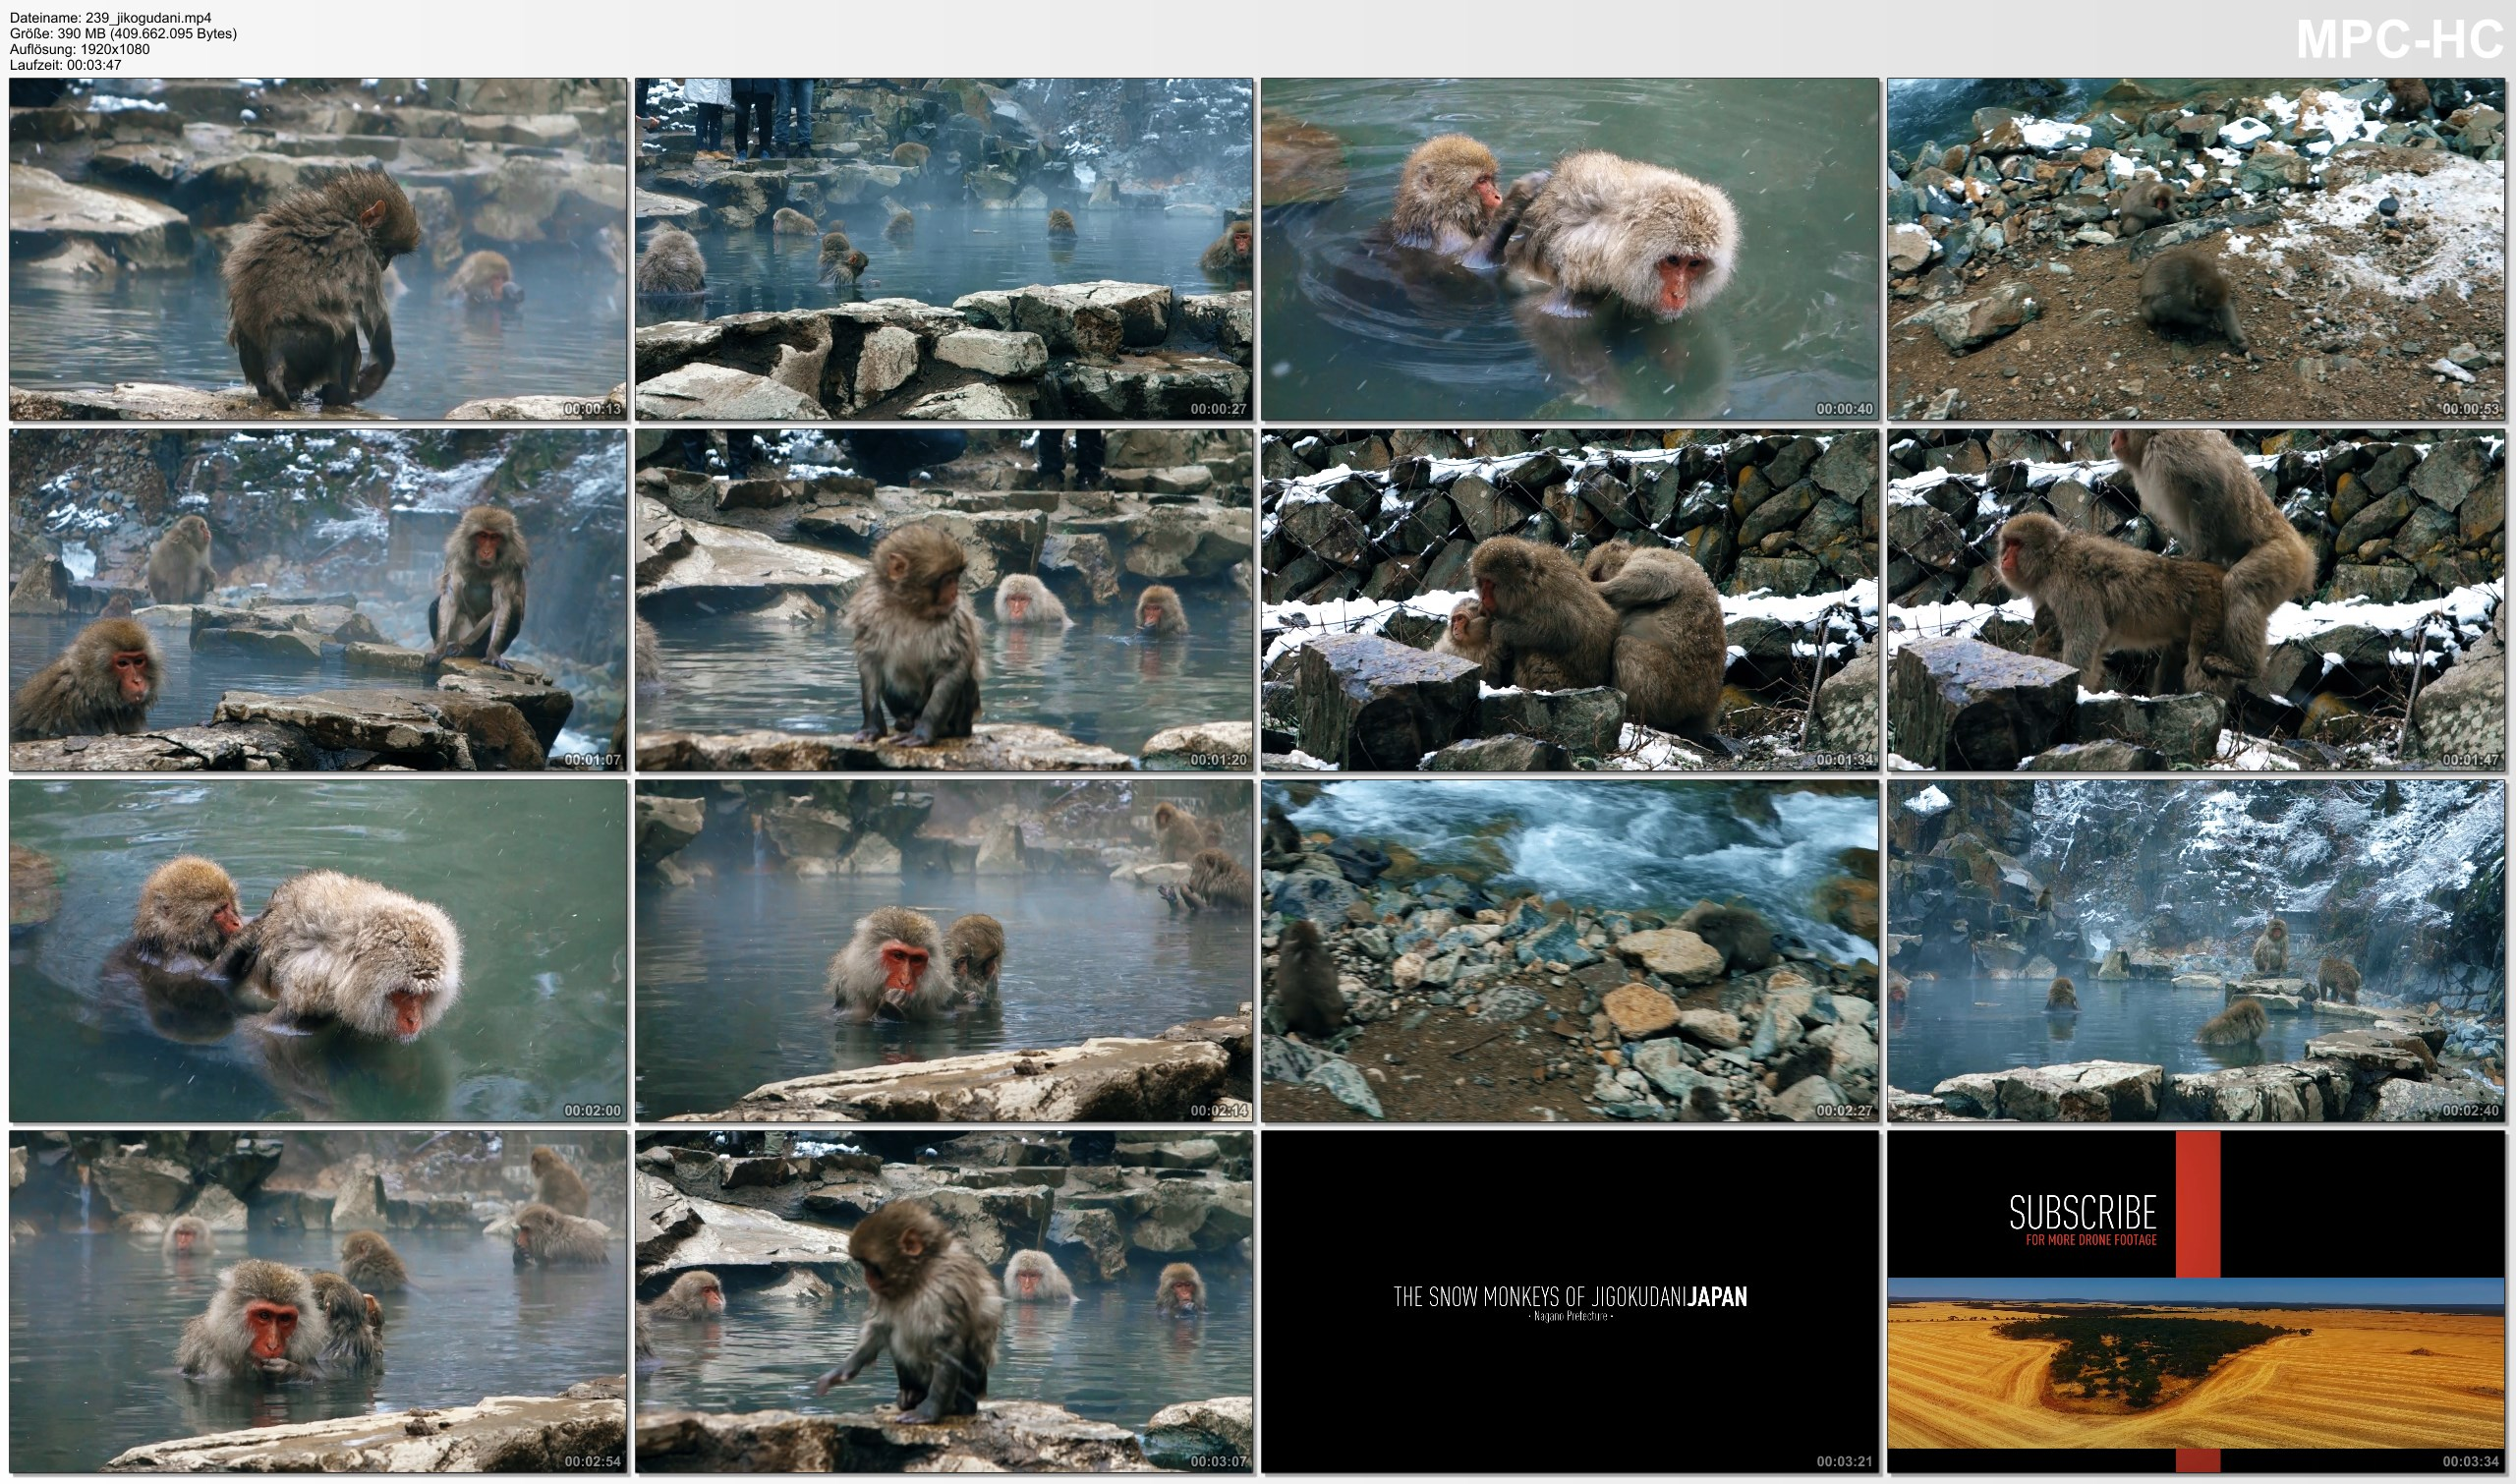 Pictures from Video 【1080p】Footage | Jigokudani SNOW MONKEYS 2019 ..: Japanese Macaques | Hot Bath in Nagano Monkey Park